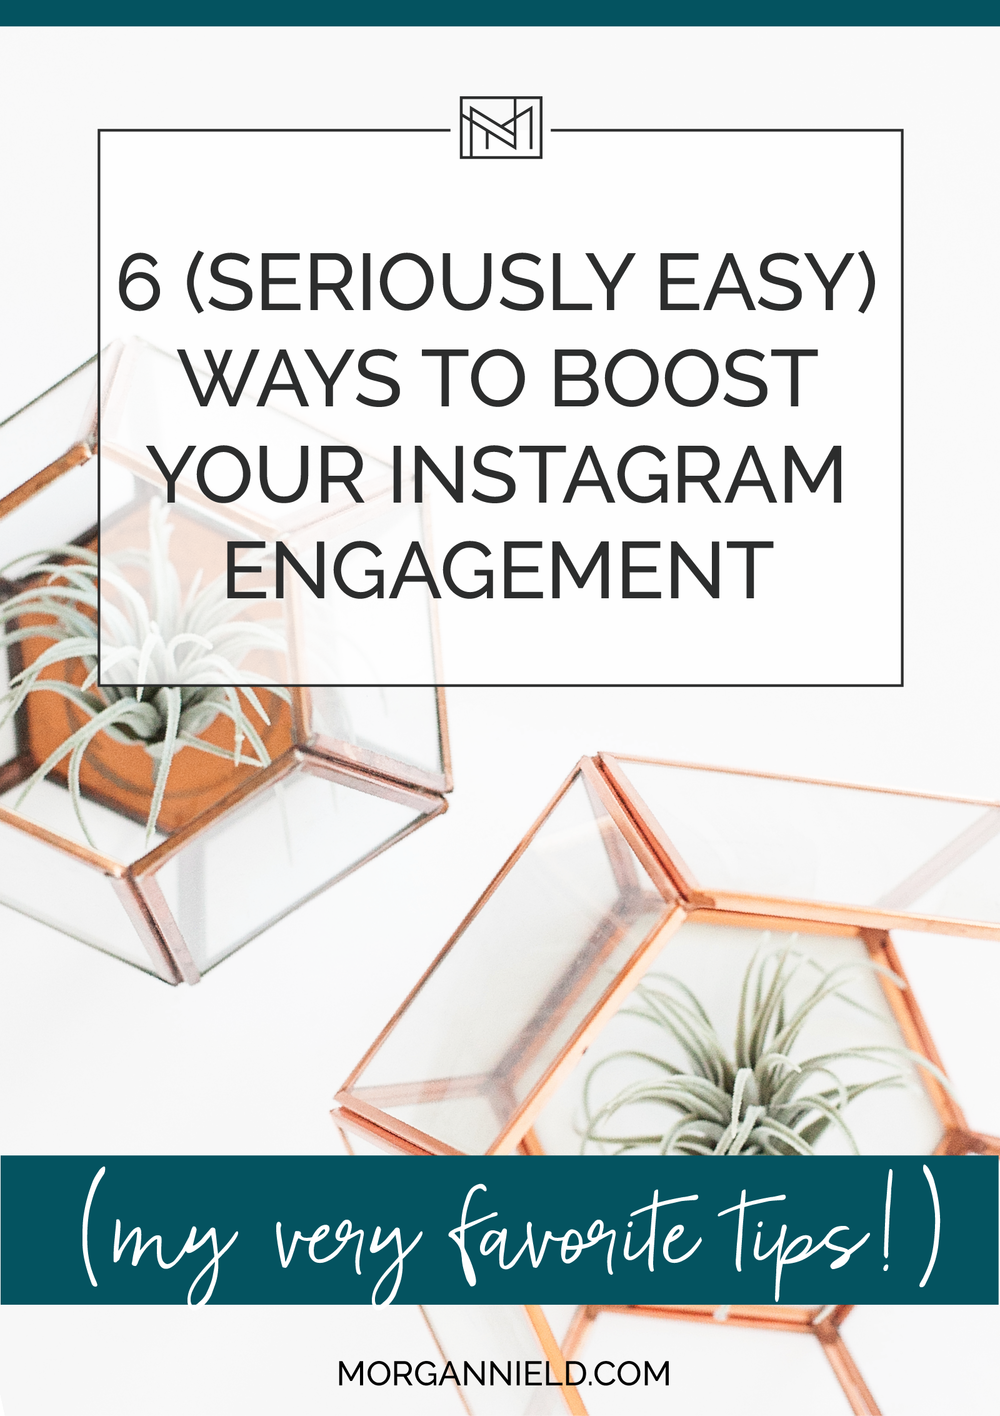 6 Ways to Boost Your Instagram Engagement | Gaining Instagram followers isn't the hard part-- it's creating an engaged community that actually wants to buy your product! No engagement? You're going to have a lot harder time selling. Today I'm sharing 6 key pointers on how to get YOUR Instagram community engaged + ridiculously excited for what YOU have to offer! Click through to the blog >>